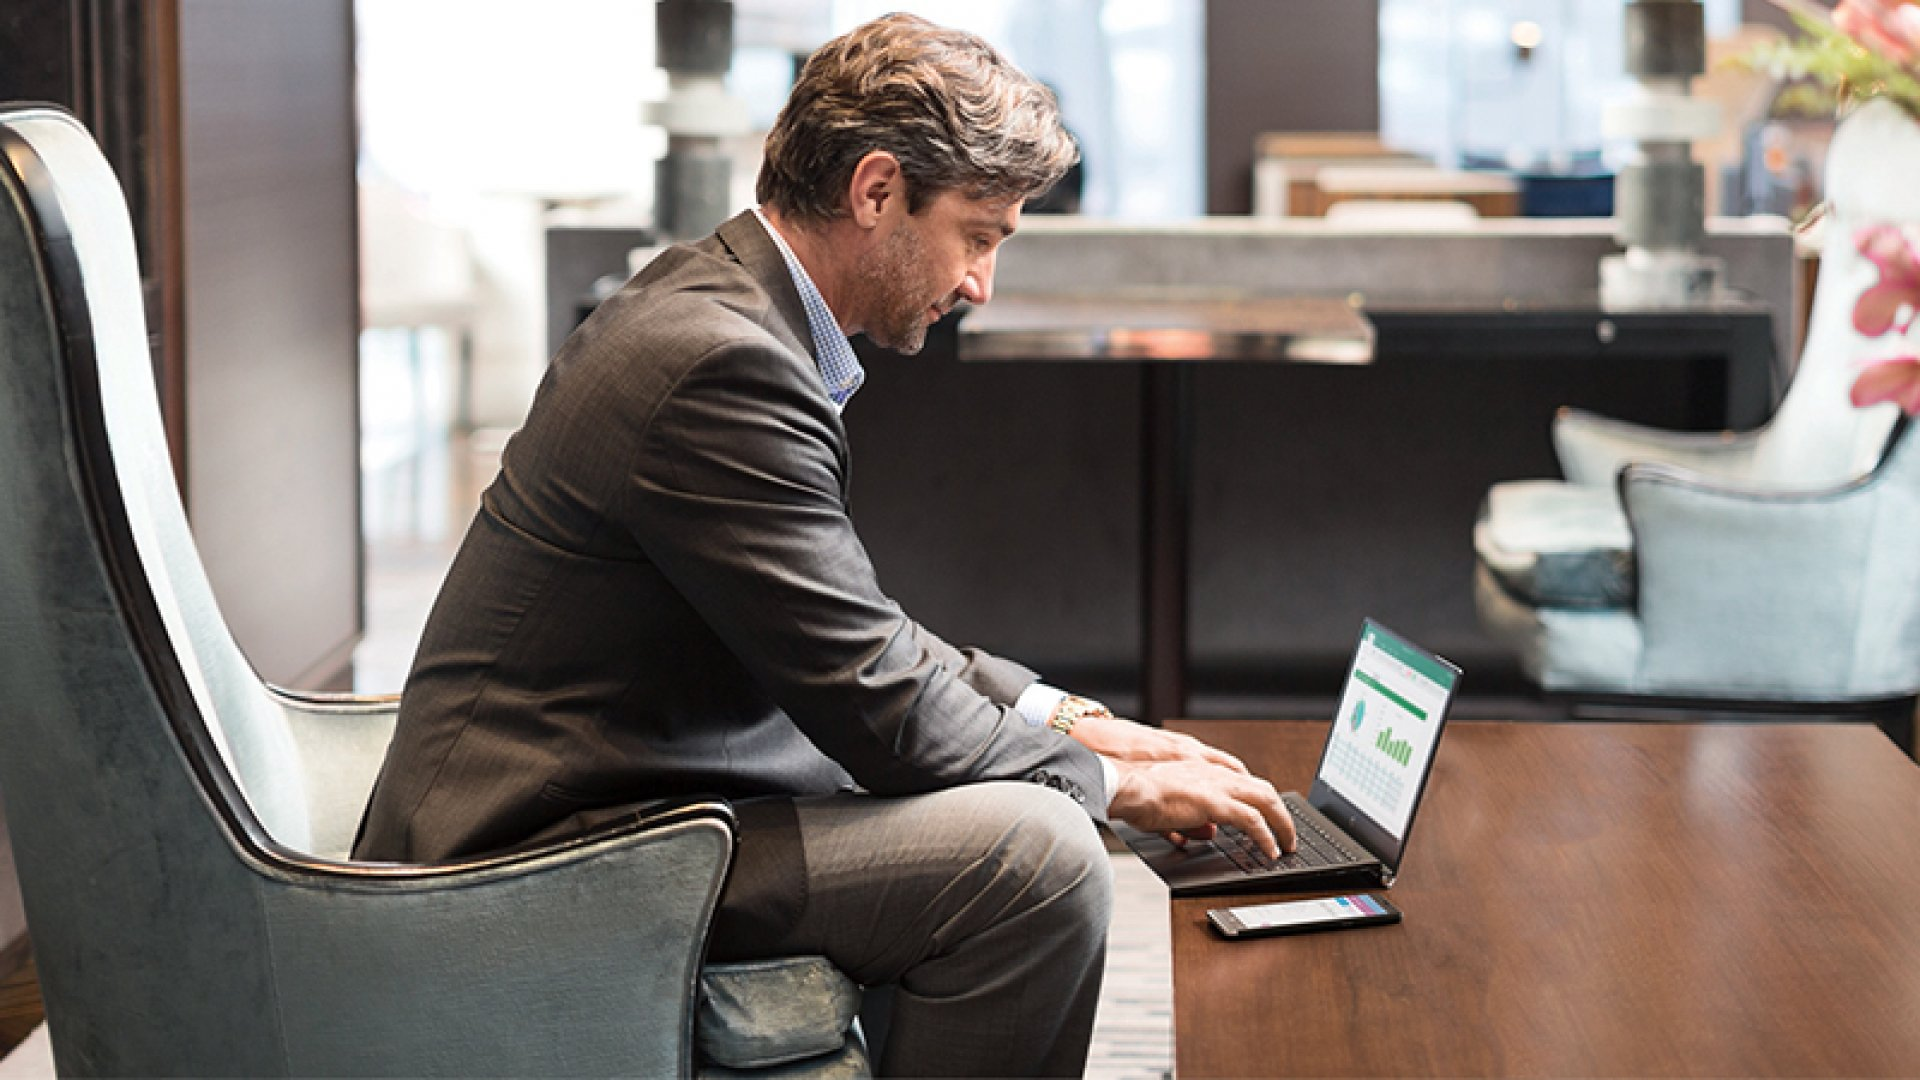 With a majority of workers logging in from home and hotels, the modern office and the gadgets you use will have to change.